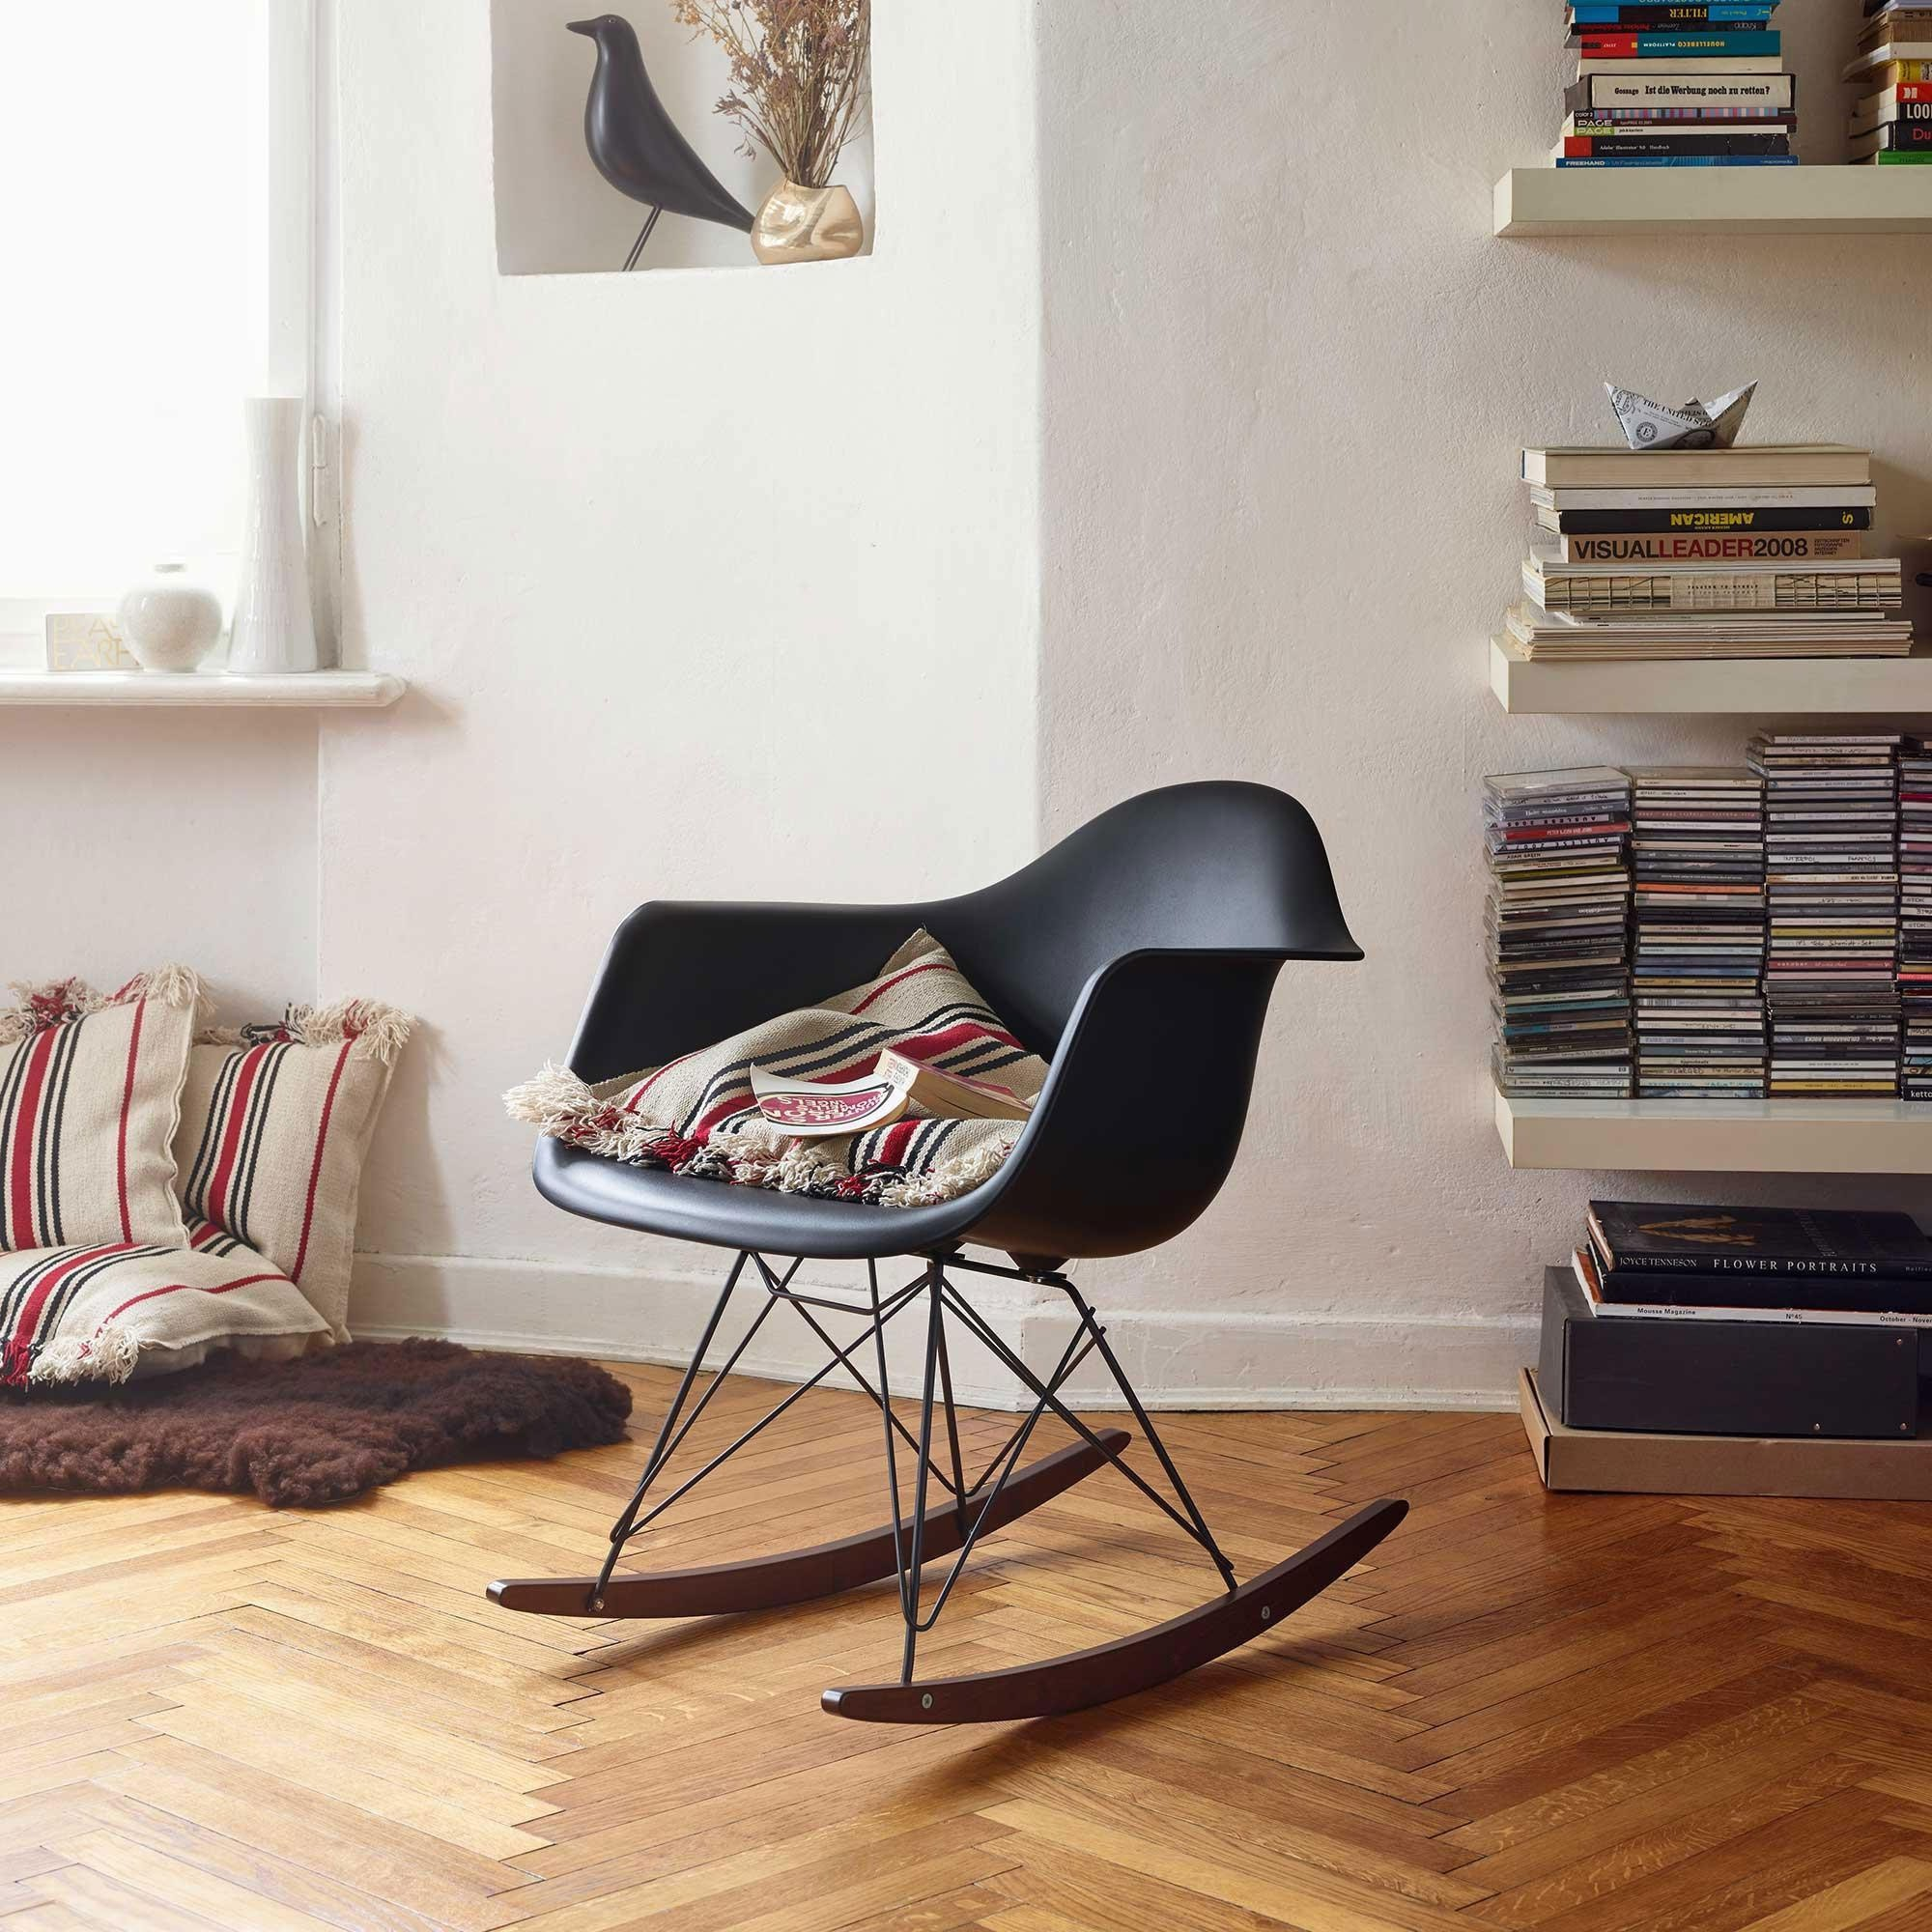 Eames Rar Eames Plastic Armchair Rar Rocking Chair